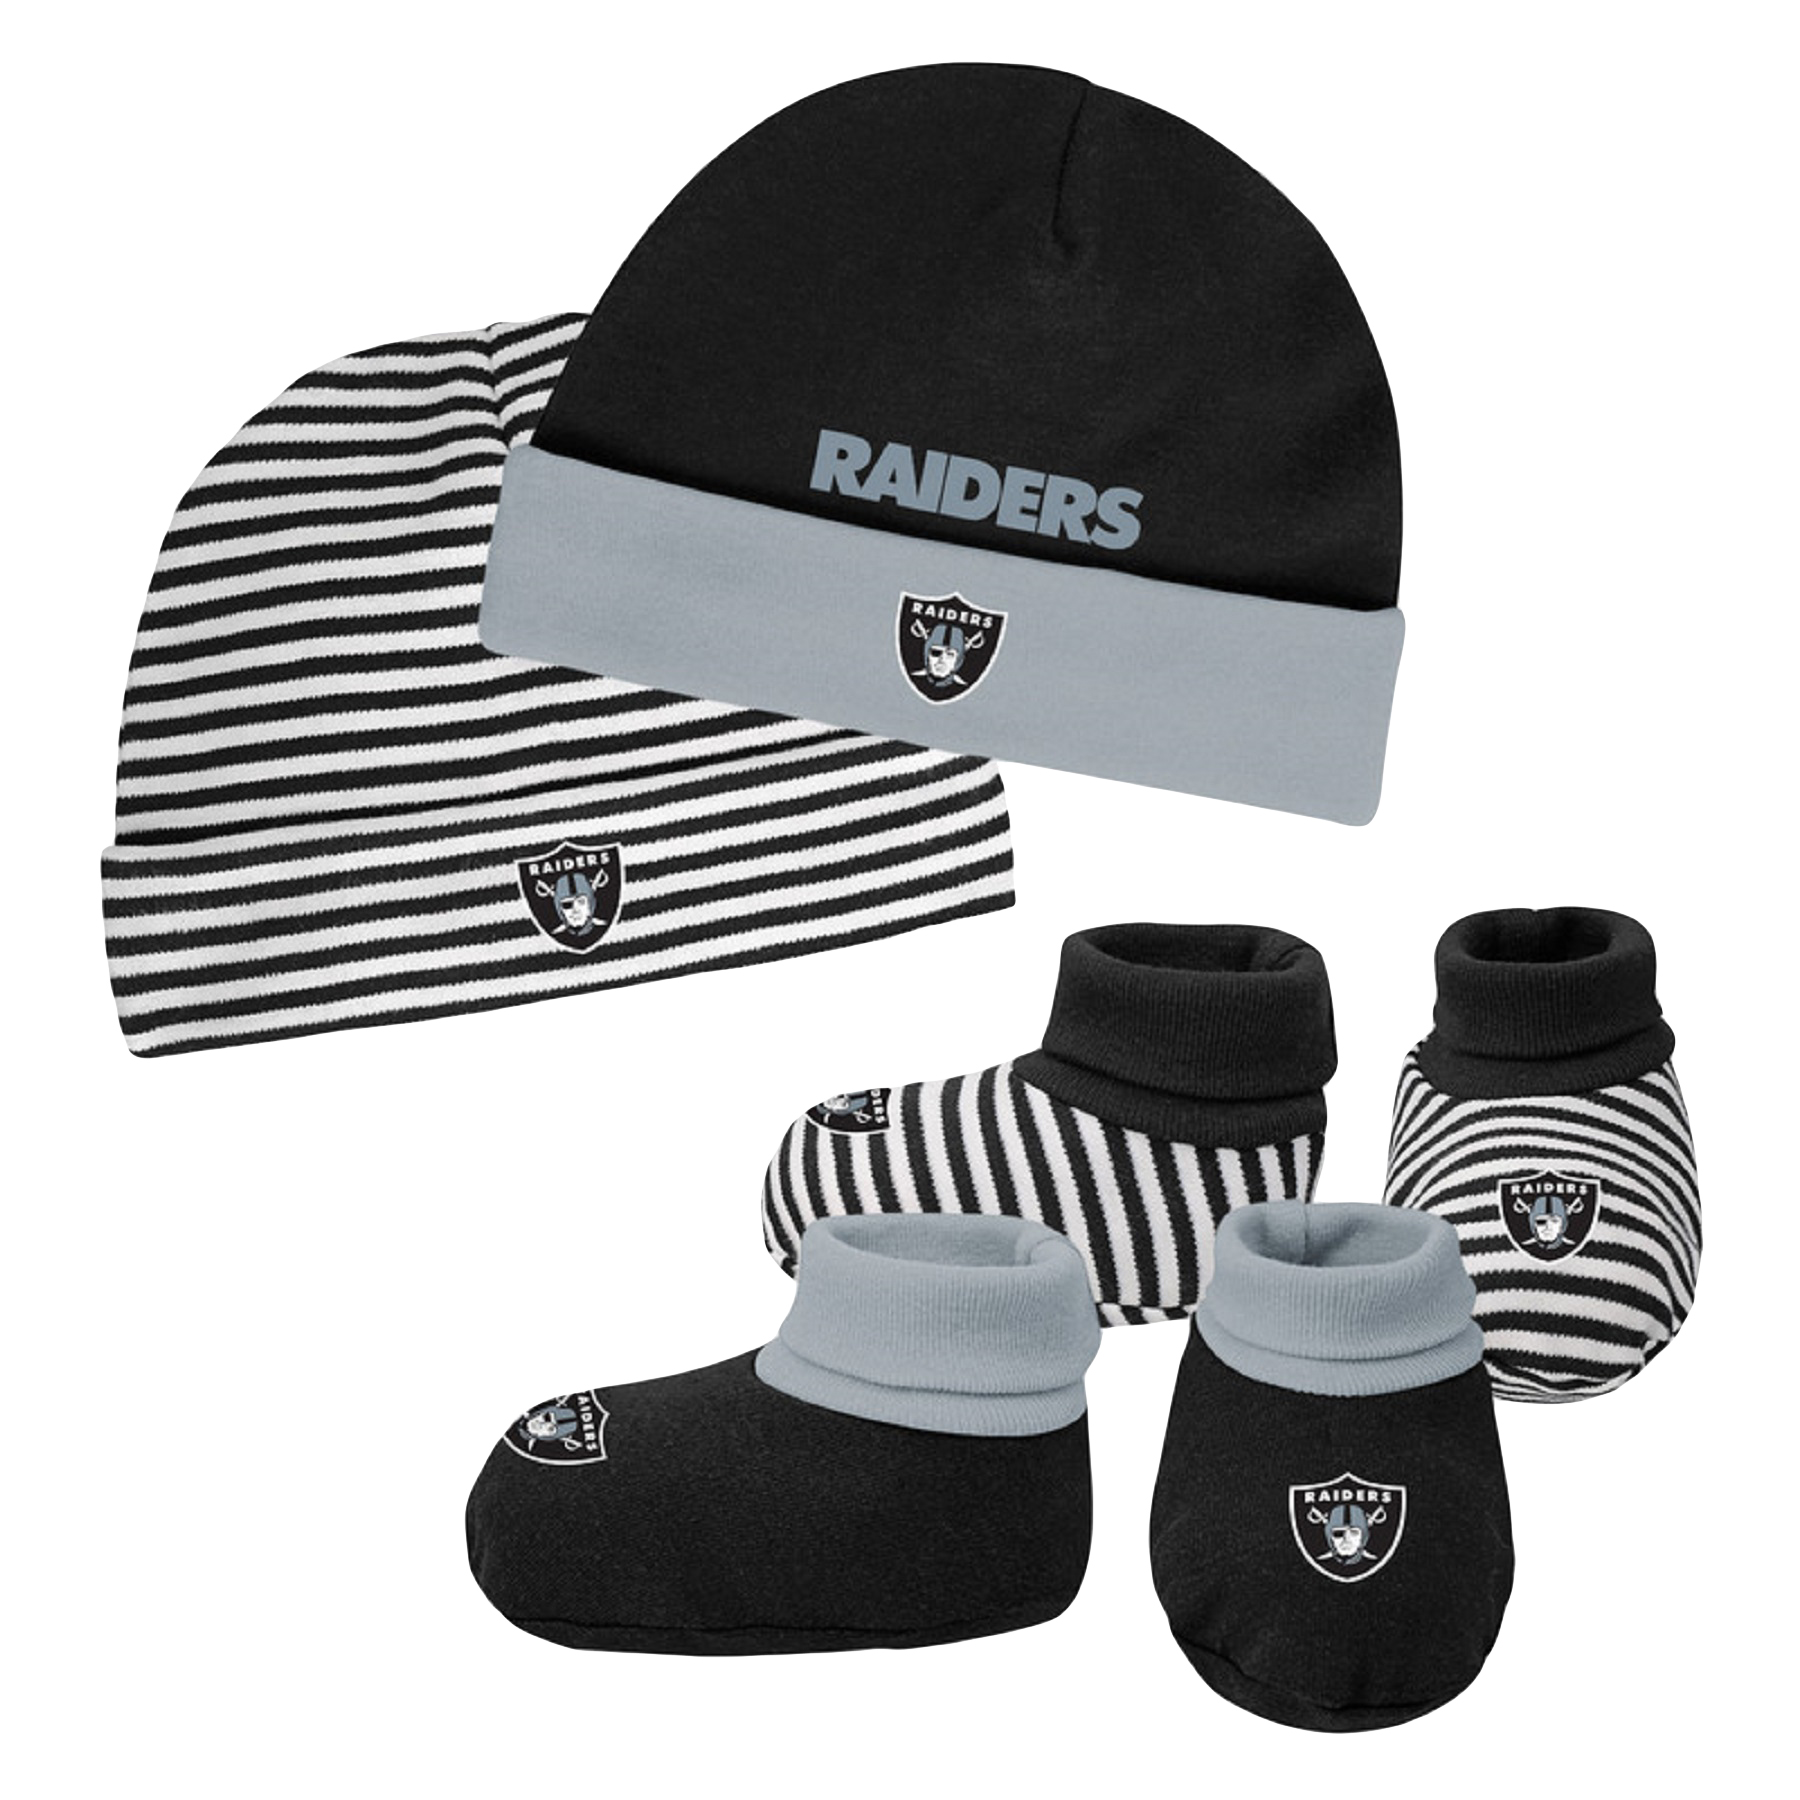 Newborn & Infant Black/Silver Oakland Raiders Cuffed Knit Hat & Booties Set - Newborn